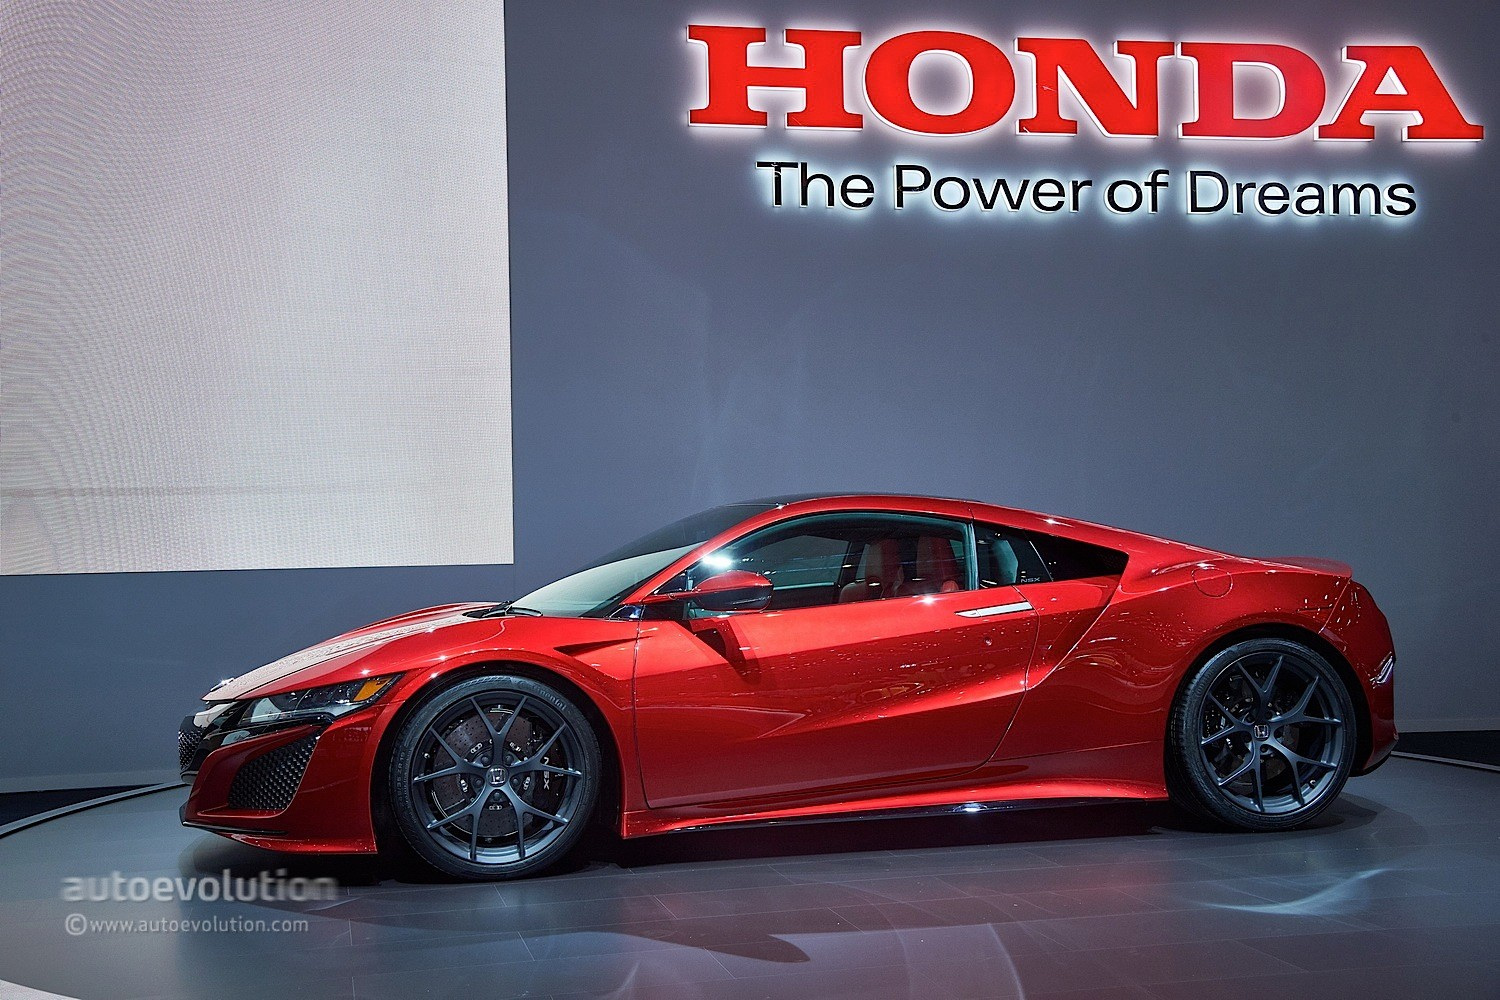 honda nsx reborn as a hybrid supercar at geneva 2015 video live photos autoevolution. Black Bedroom Furniture Sets. Home Design Ideas